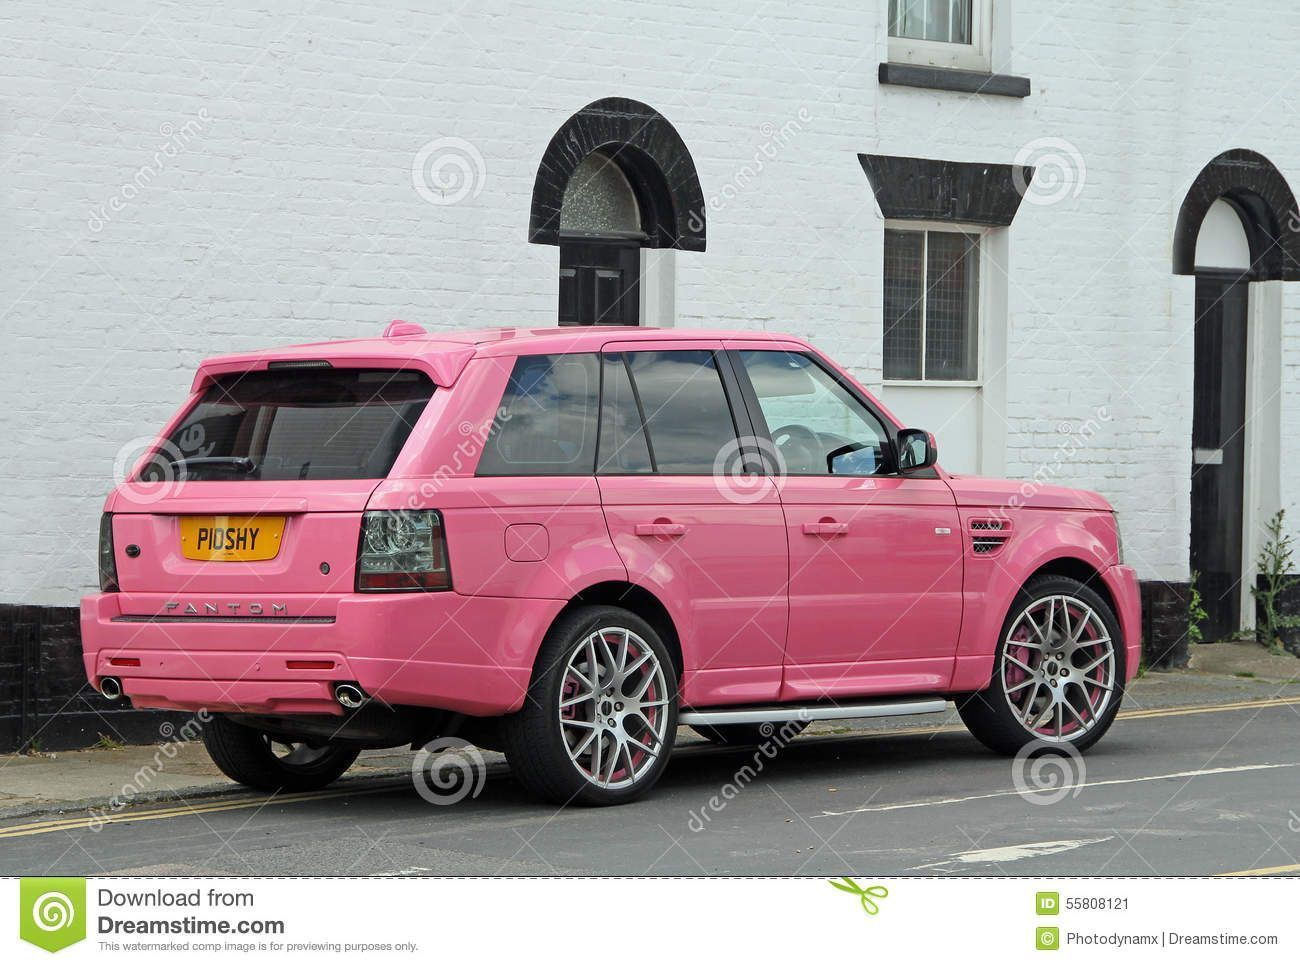 Pink Range Rover Car - Download From Over 45 Million High Quality Stock Photos, Images, Vectors. Sign up for FREE today. Image: 55808121 #pinkrangerovers Pink Range Rover Car - Download From Over 45 Million High Quality Stock Photos, Images, Vectors. Sign up for FREE today. Image: 55808121 #pinkrangerovers Pink Range Rover Car - Download From Over 45 Million High Quality Stock Photos, Images, Vectors. Sign up for FREE today. Image: 55808121 #pinkrangerovers Pink Range Rover Car - Download From O #pinkrangerovers